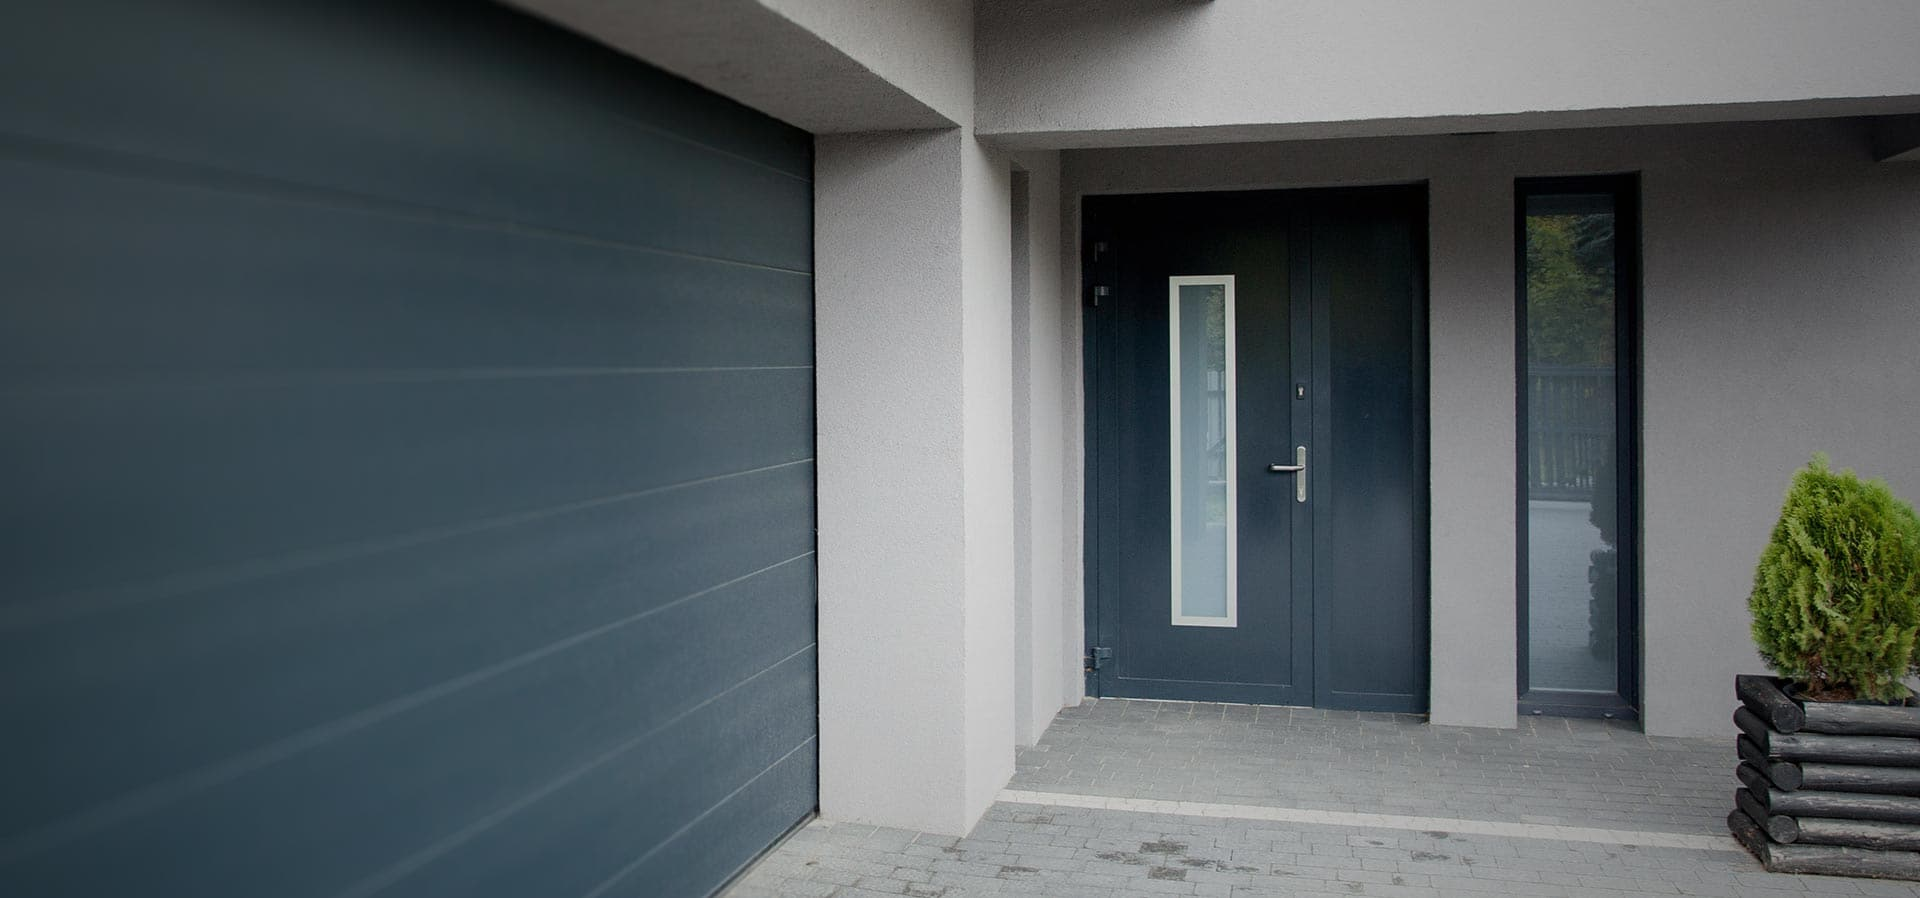 Aluminium entrance door with obscure glass